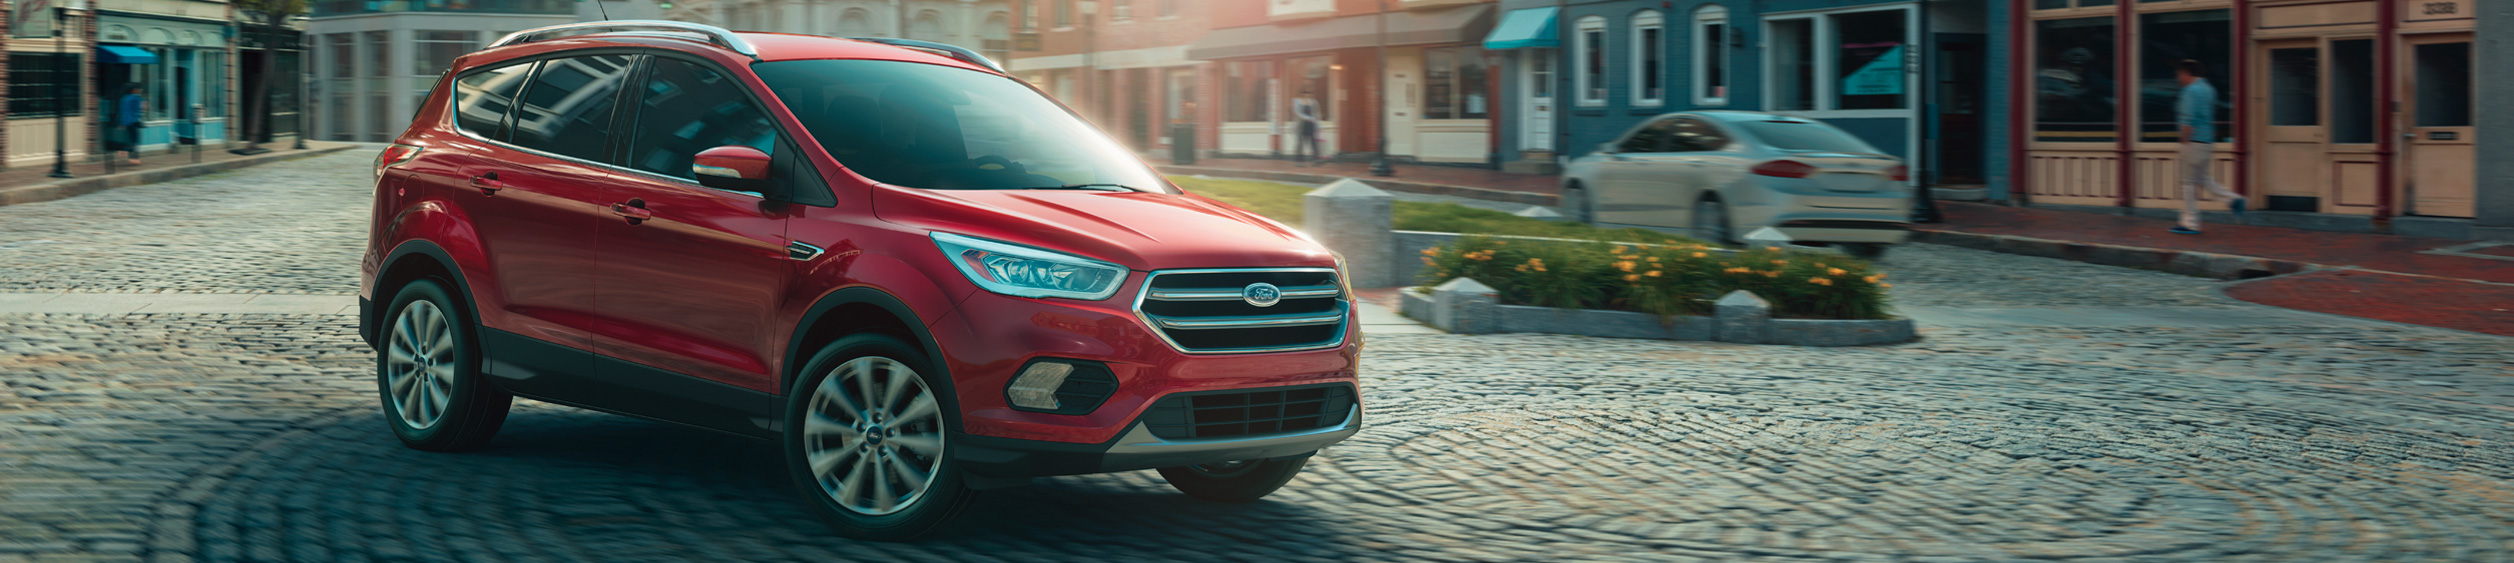 Adventurous 2018 Ford Escape | Aurora Ford Hay River, NWT